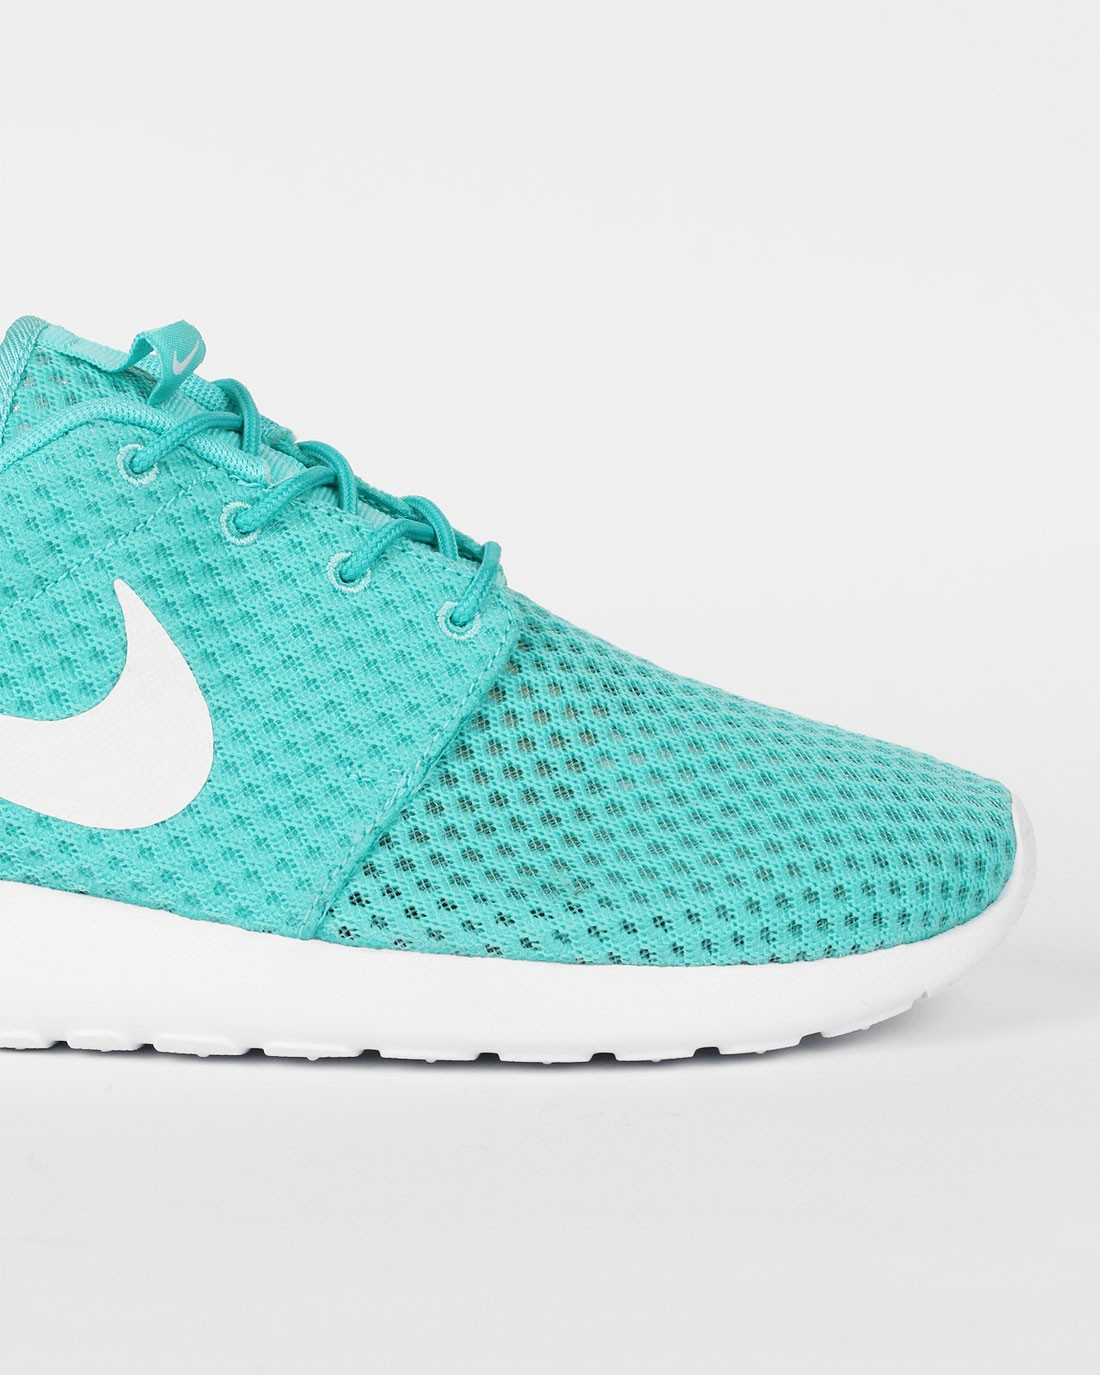 online retailer 27f9f 49416 ... Nike Roshe One BR (Breeze) Calypso Chaussures Pour Femme Blanche Bleu- Vert 718552 ...